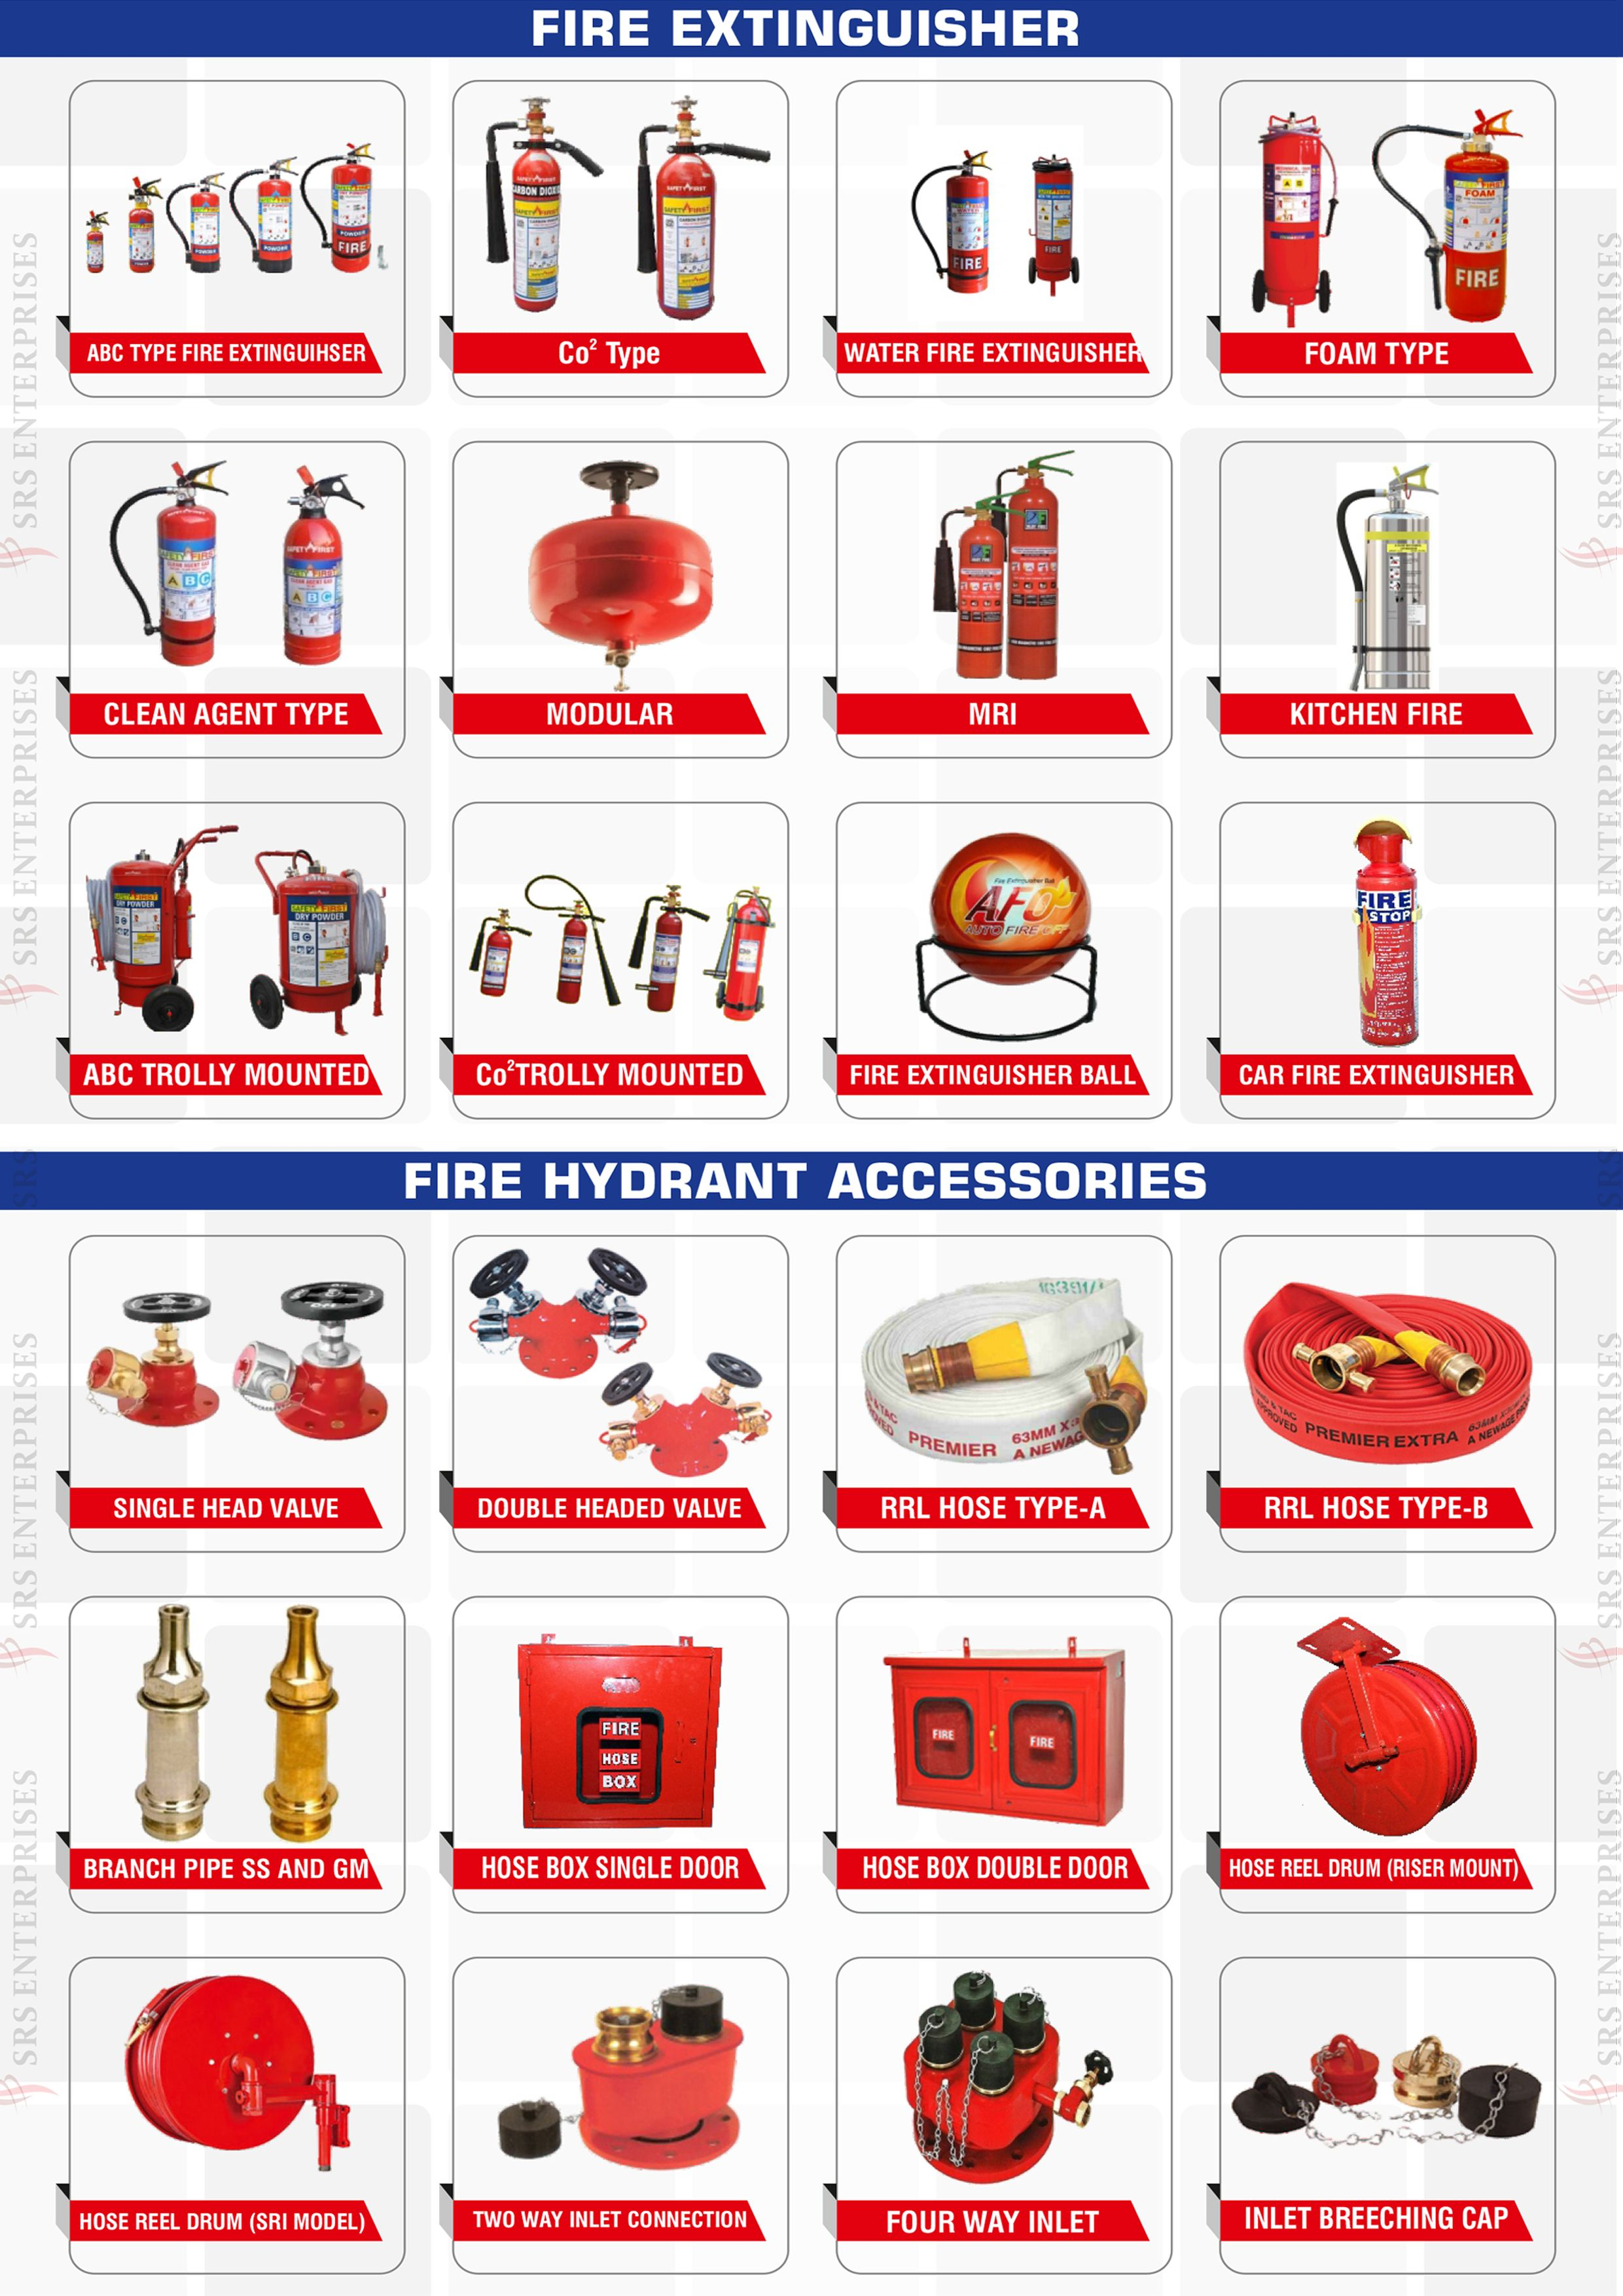 Srs Enterprises Fire Extinguisher Fire Hydrant System Smoke Fire Detection System Safety Su In 2020 Fire Safety Training Fire Safety Tips Fire Extinguisher